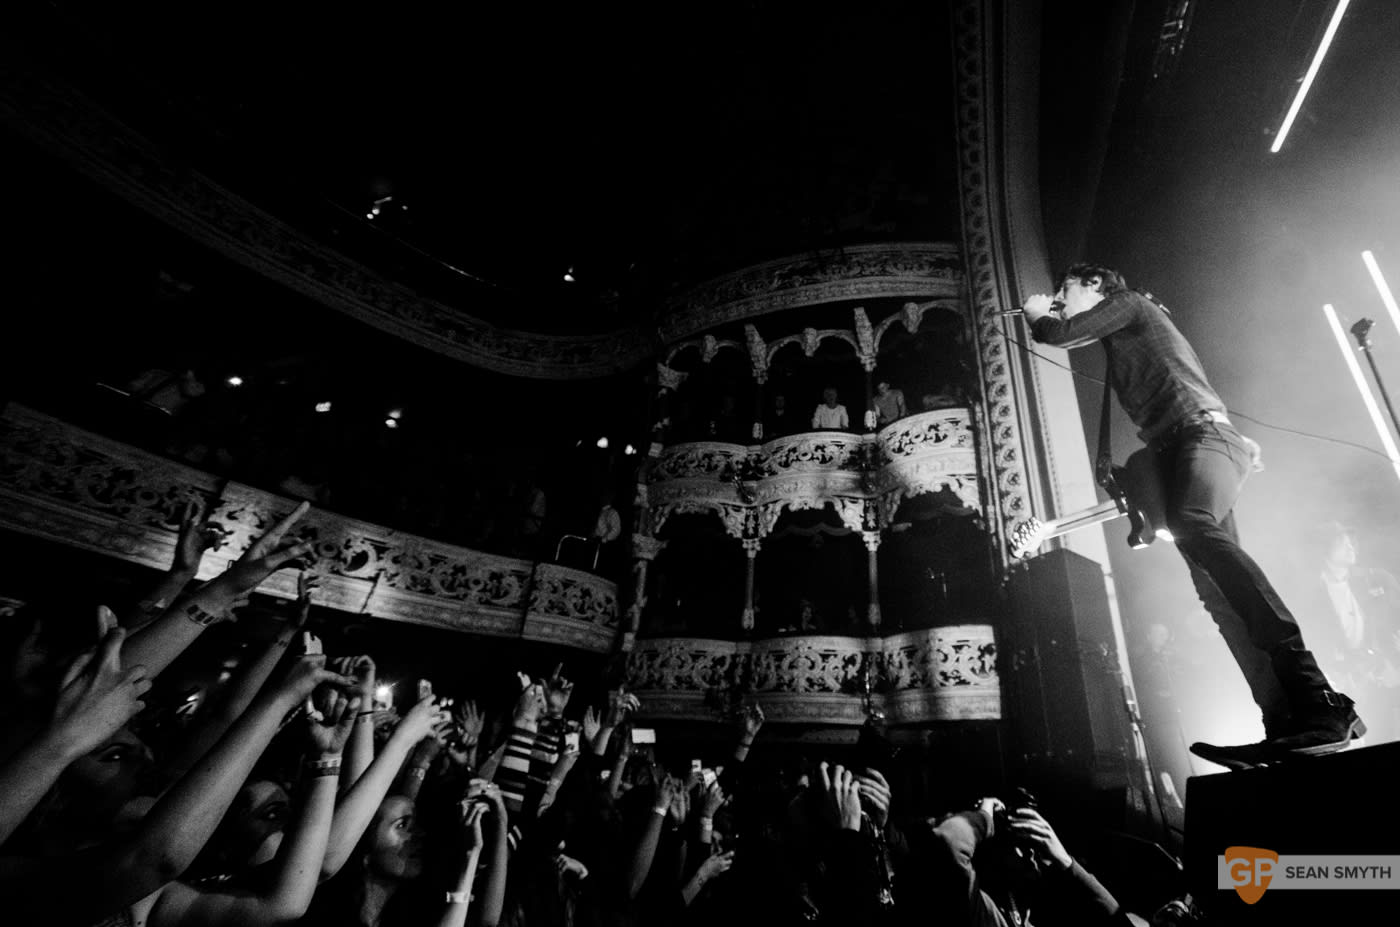 catfish-and-the-bottlemen-at-the-olympia-theatre-by-sean-smyth-20-11-16-20-of-27